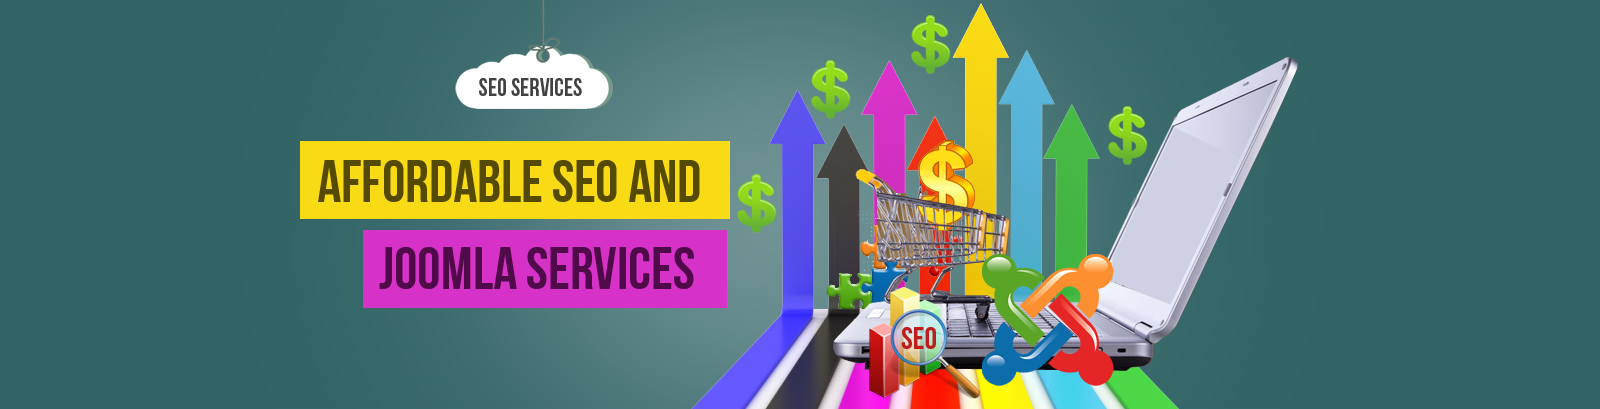 SEO and Joomla Services on affortable price